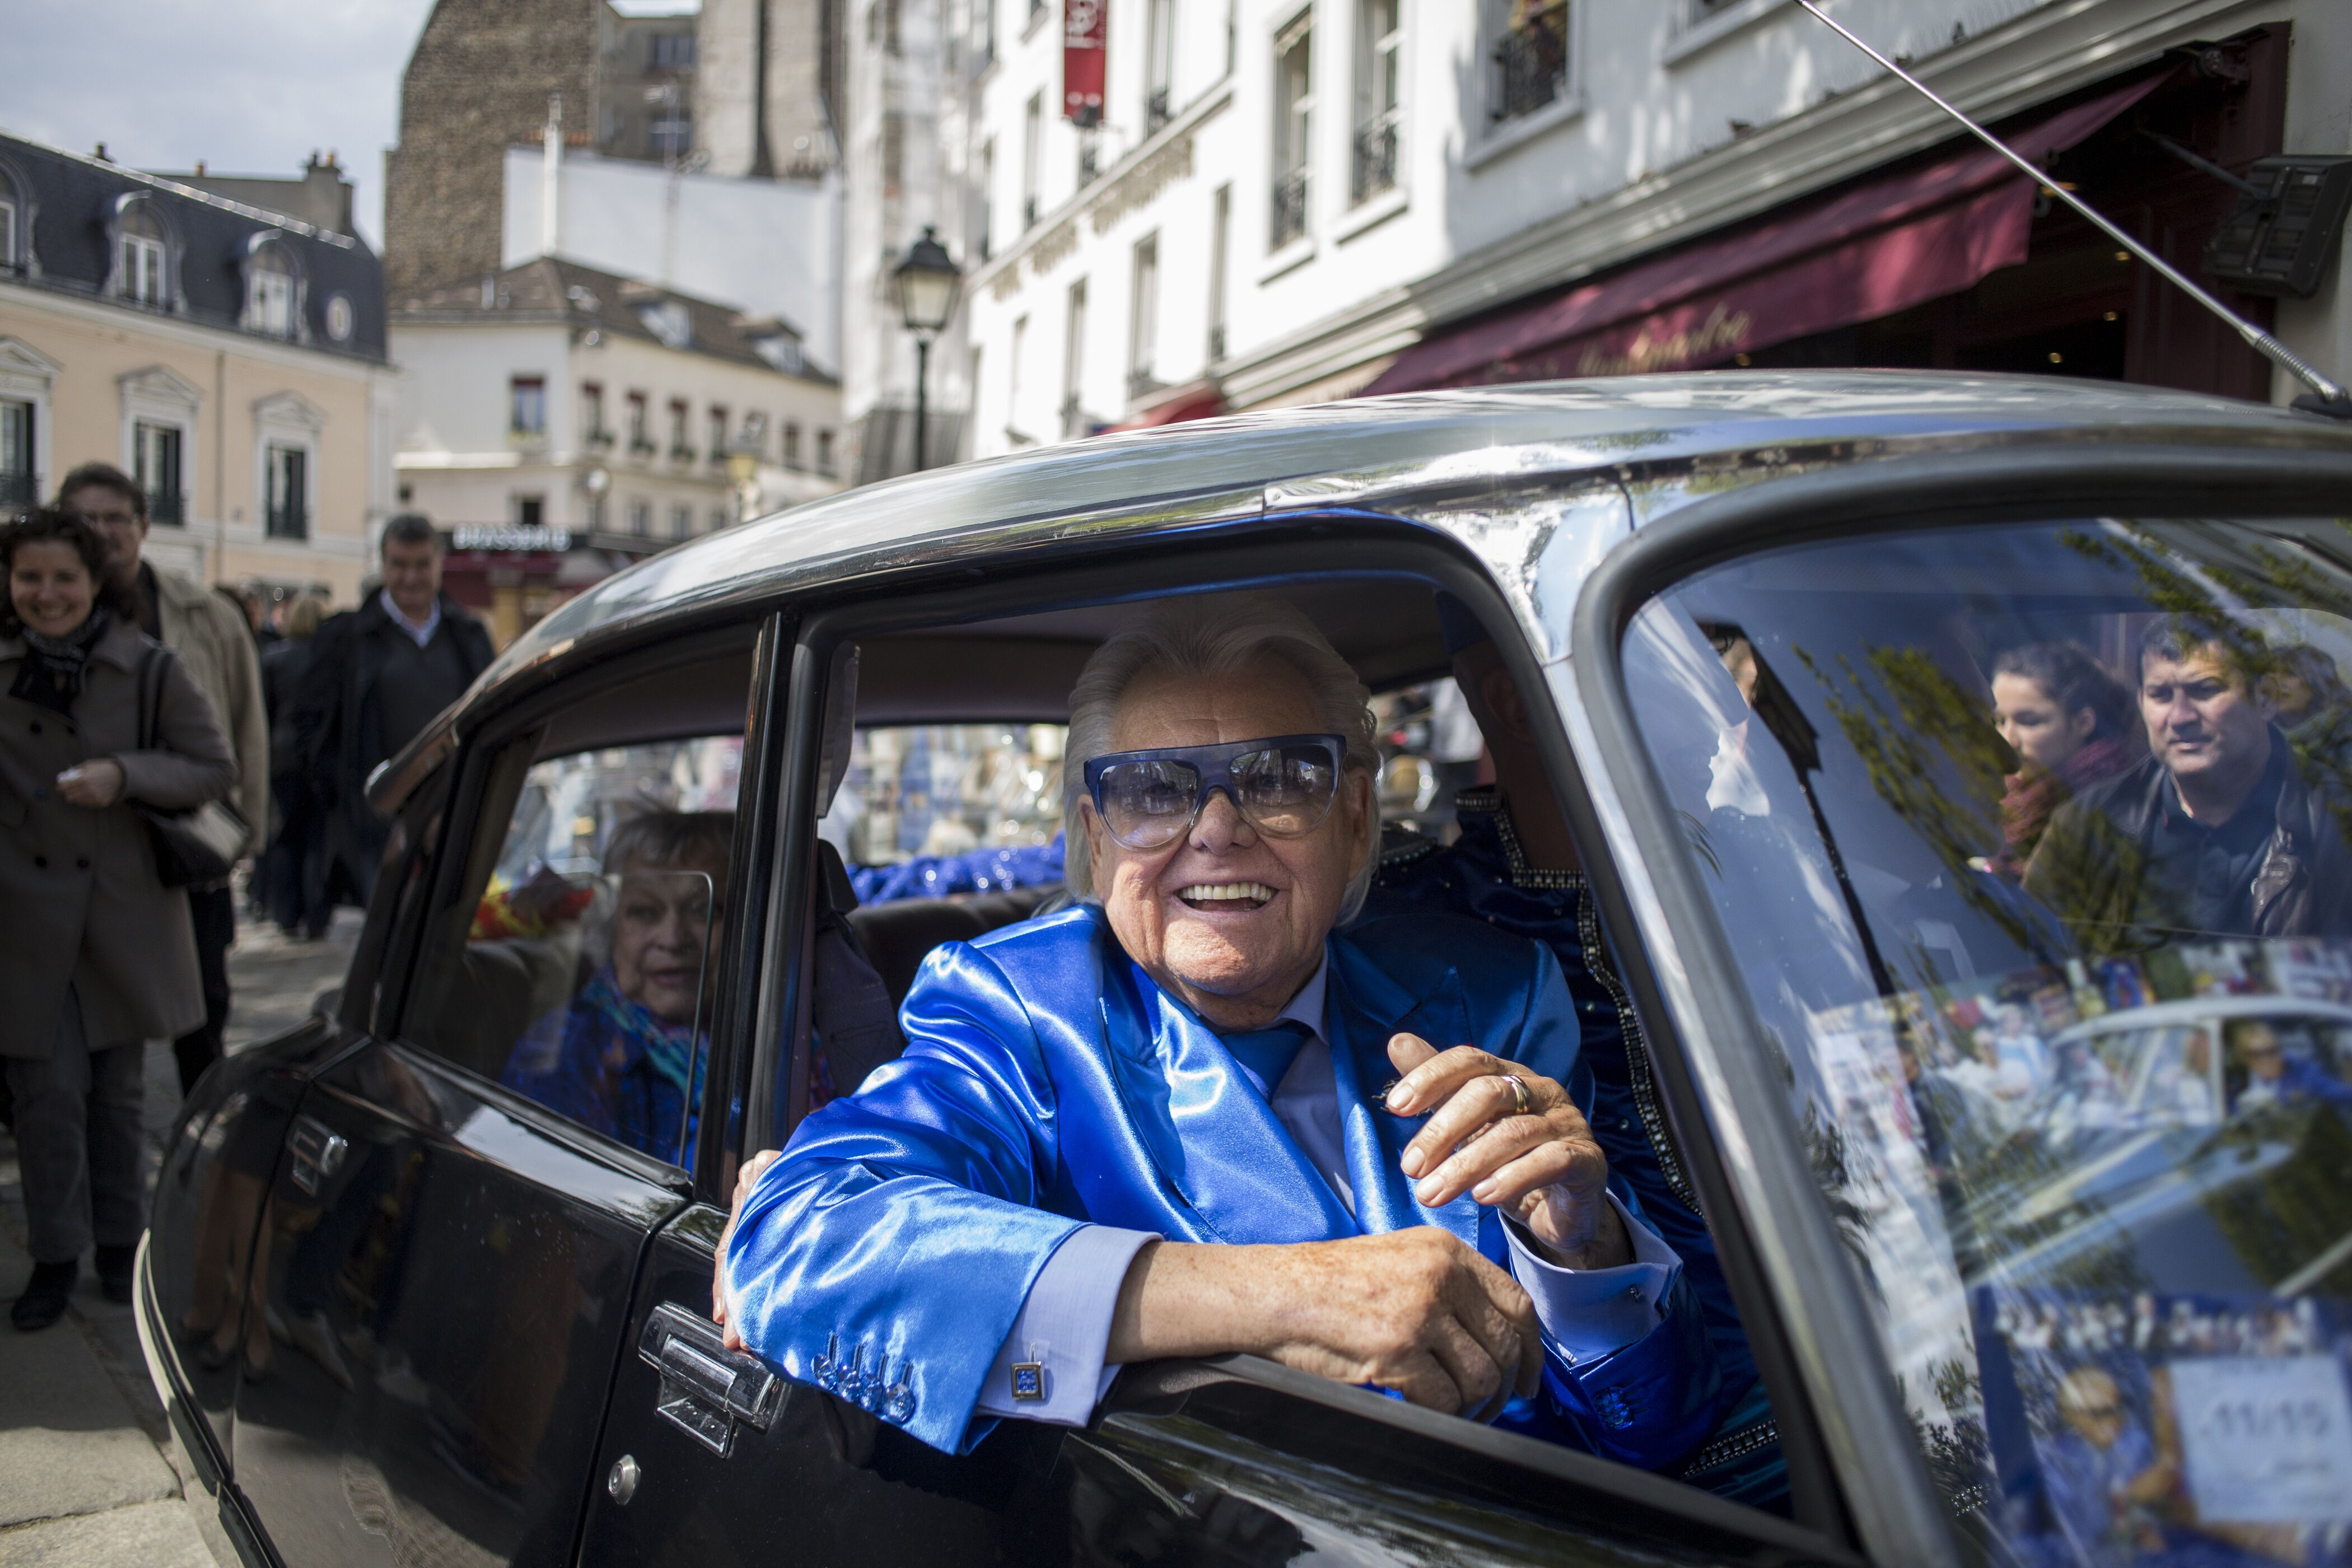 Michou arrive au Michou Day flashMob à Paris, avec un code vestimentaire bleu, le 19 avril 2014. | Photo : Getty Images